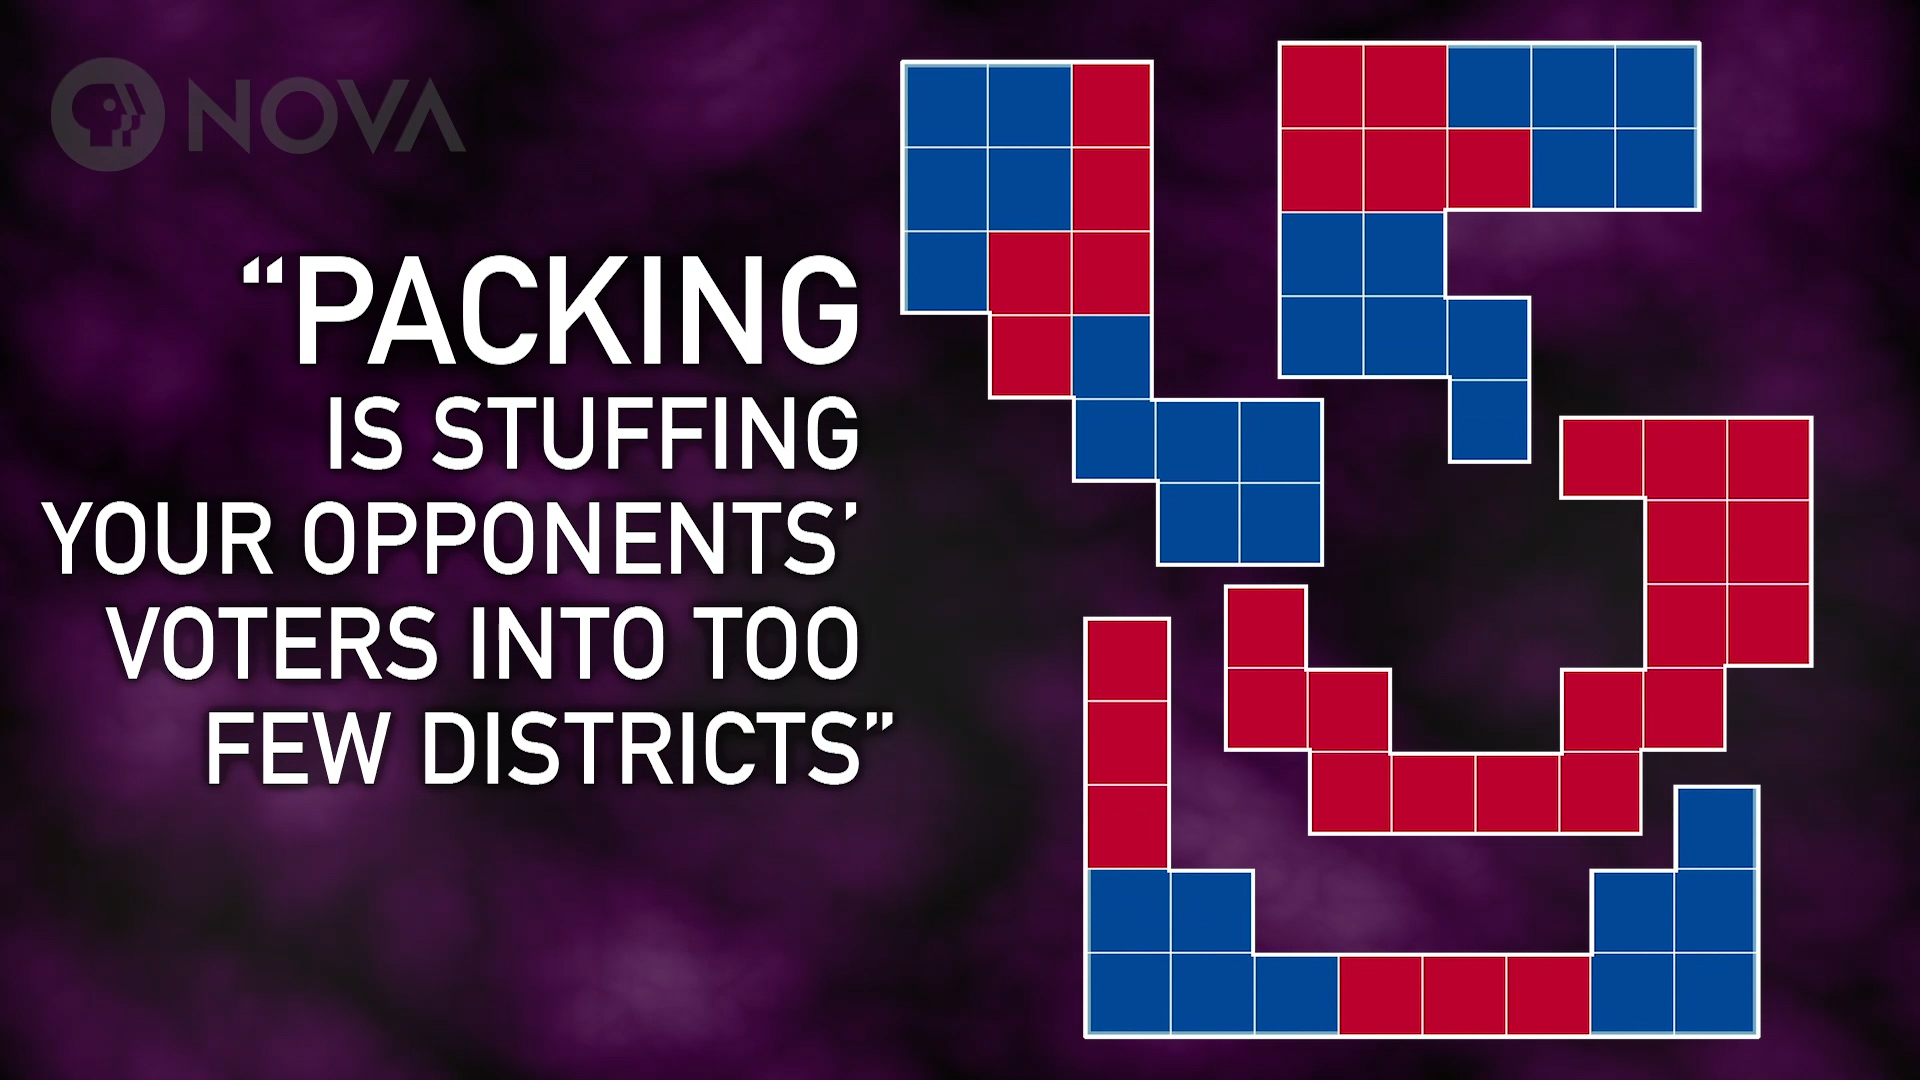 Packing is stuffing your opponents' voter into too few districts.